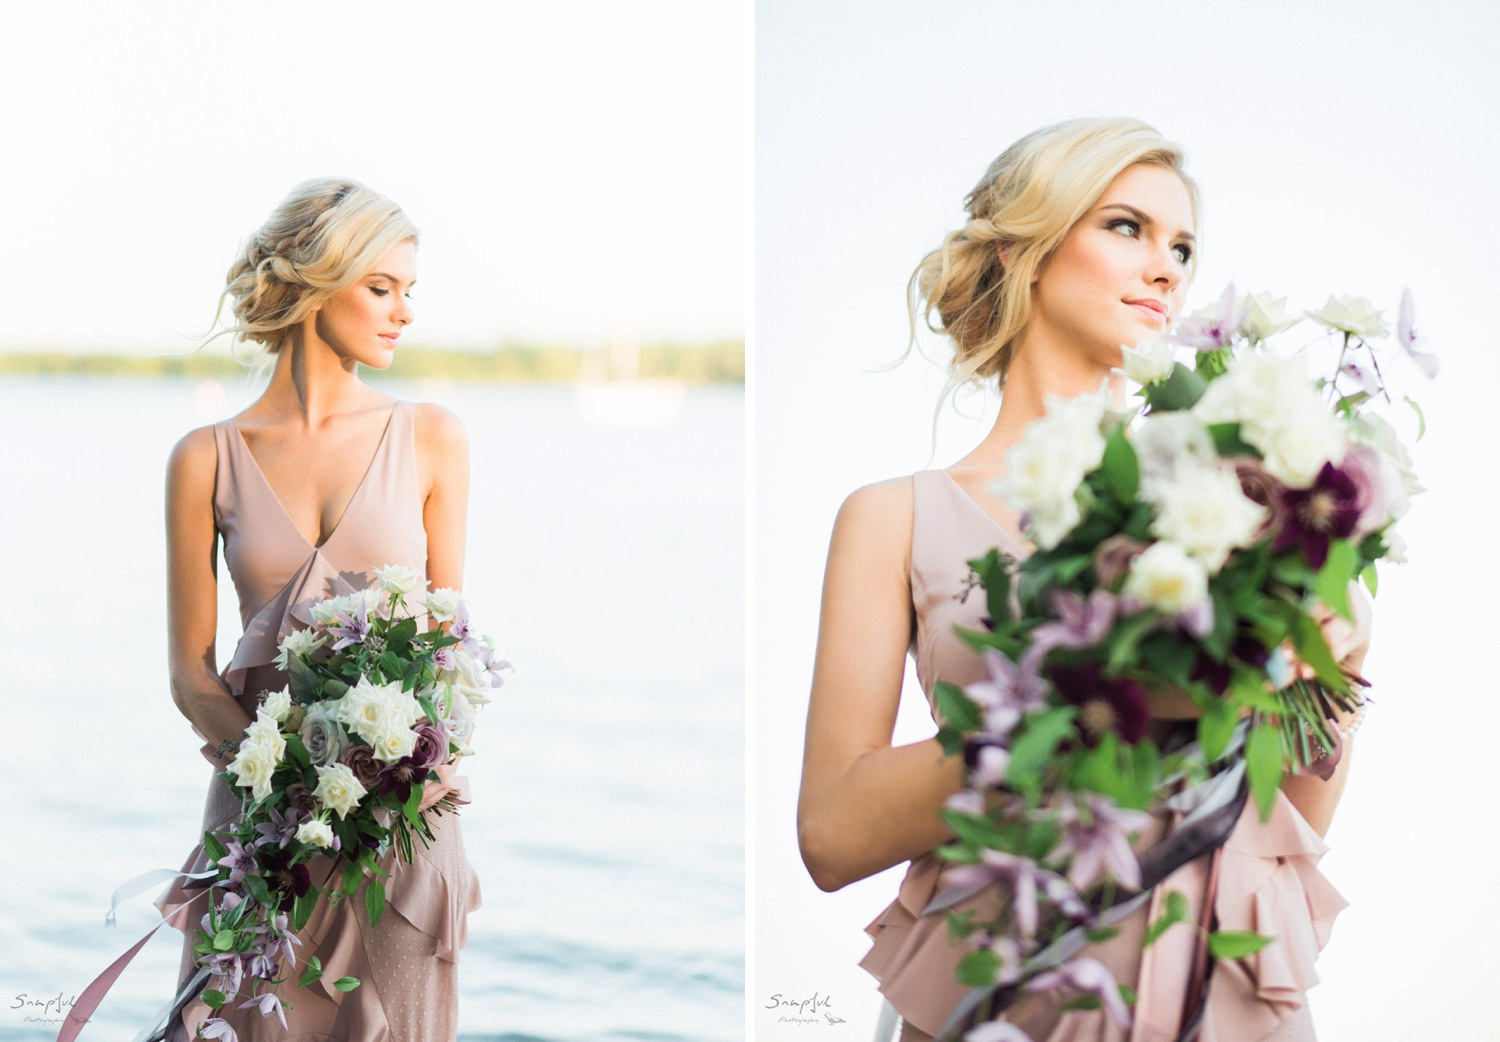 Bridal session at Cherry Beach in Toronto